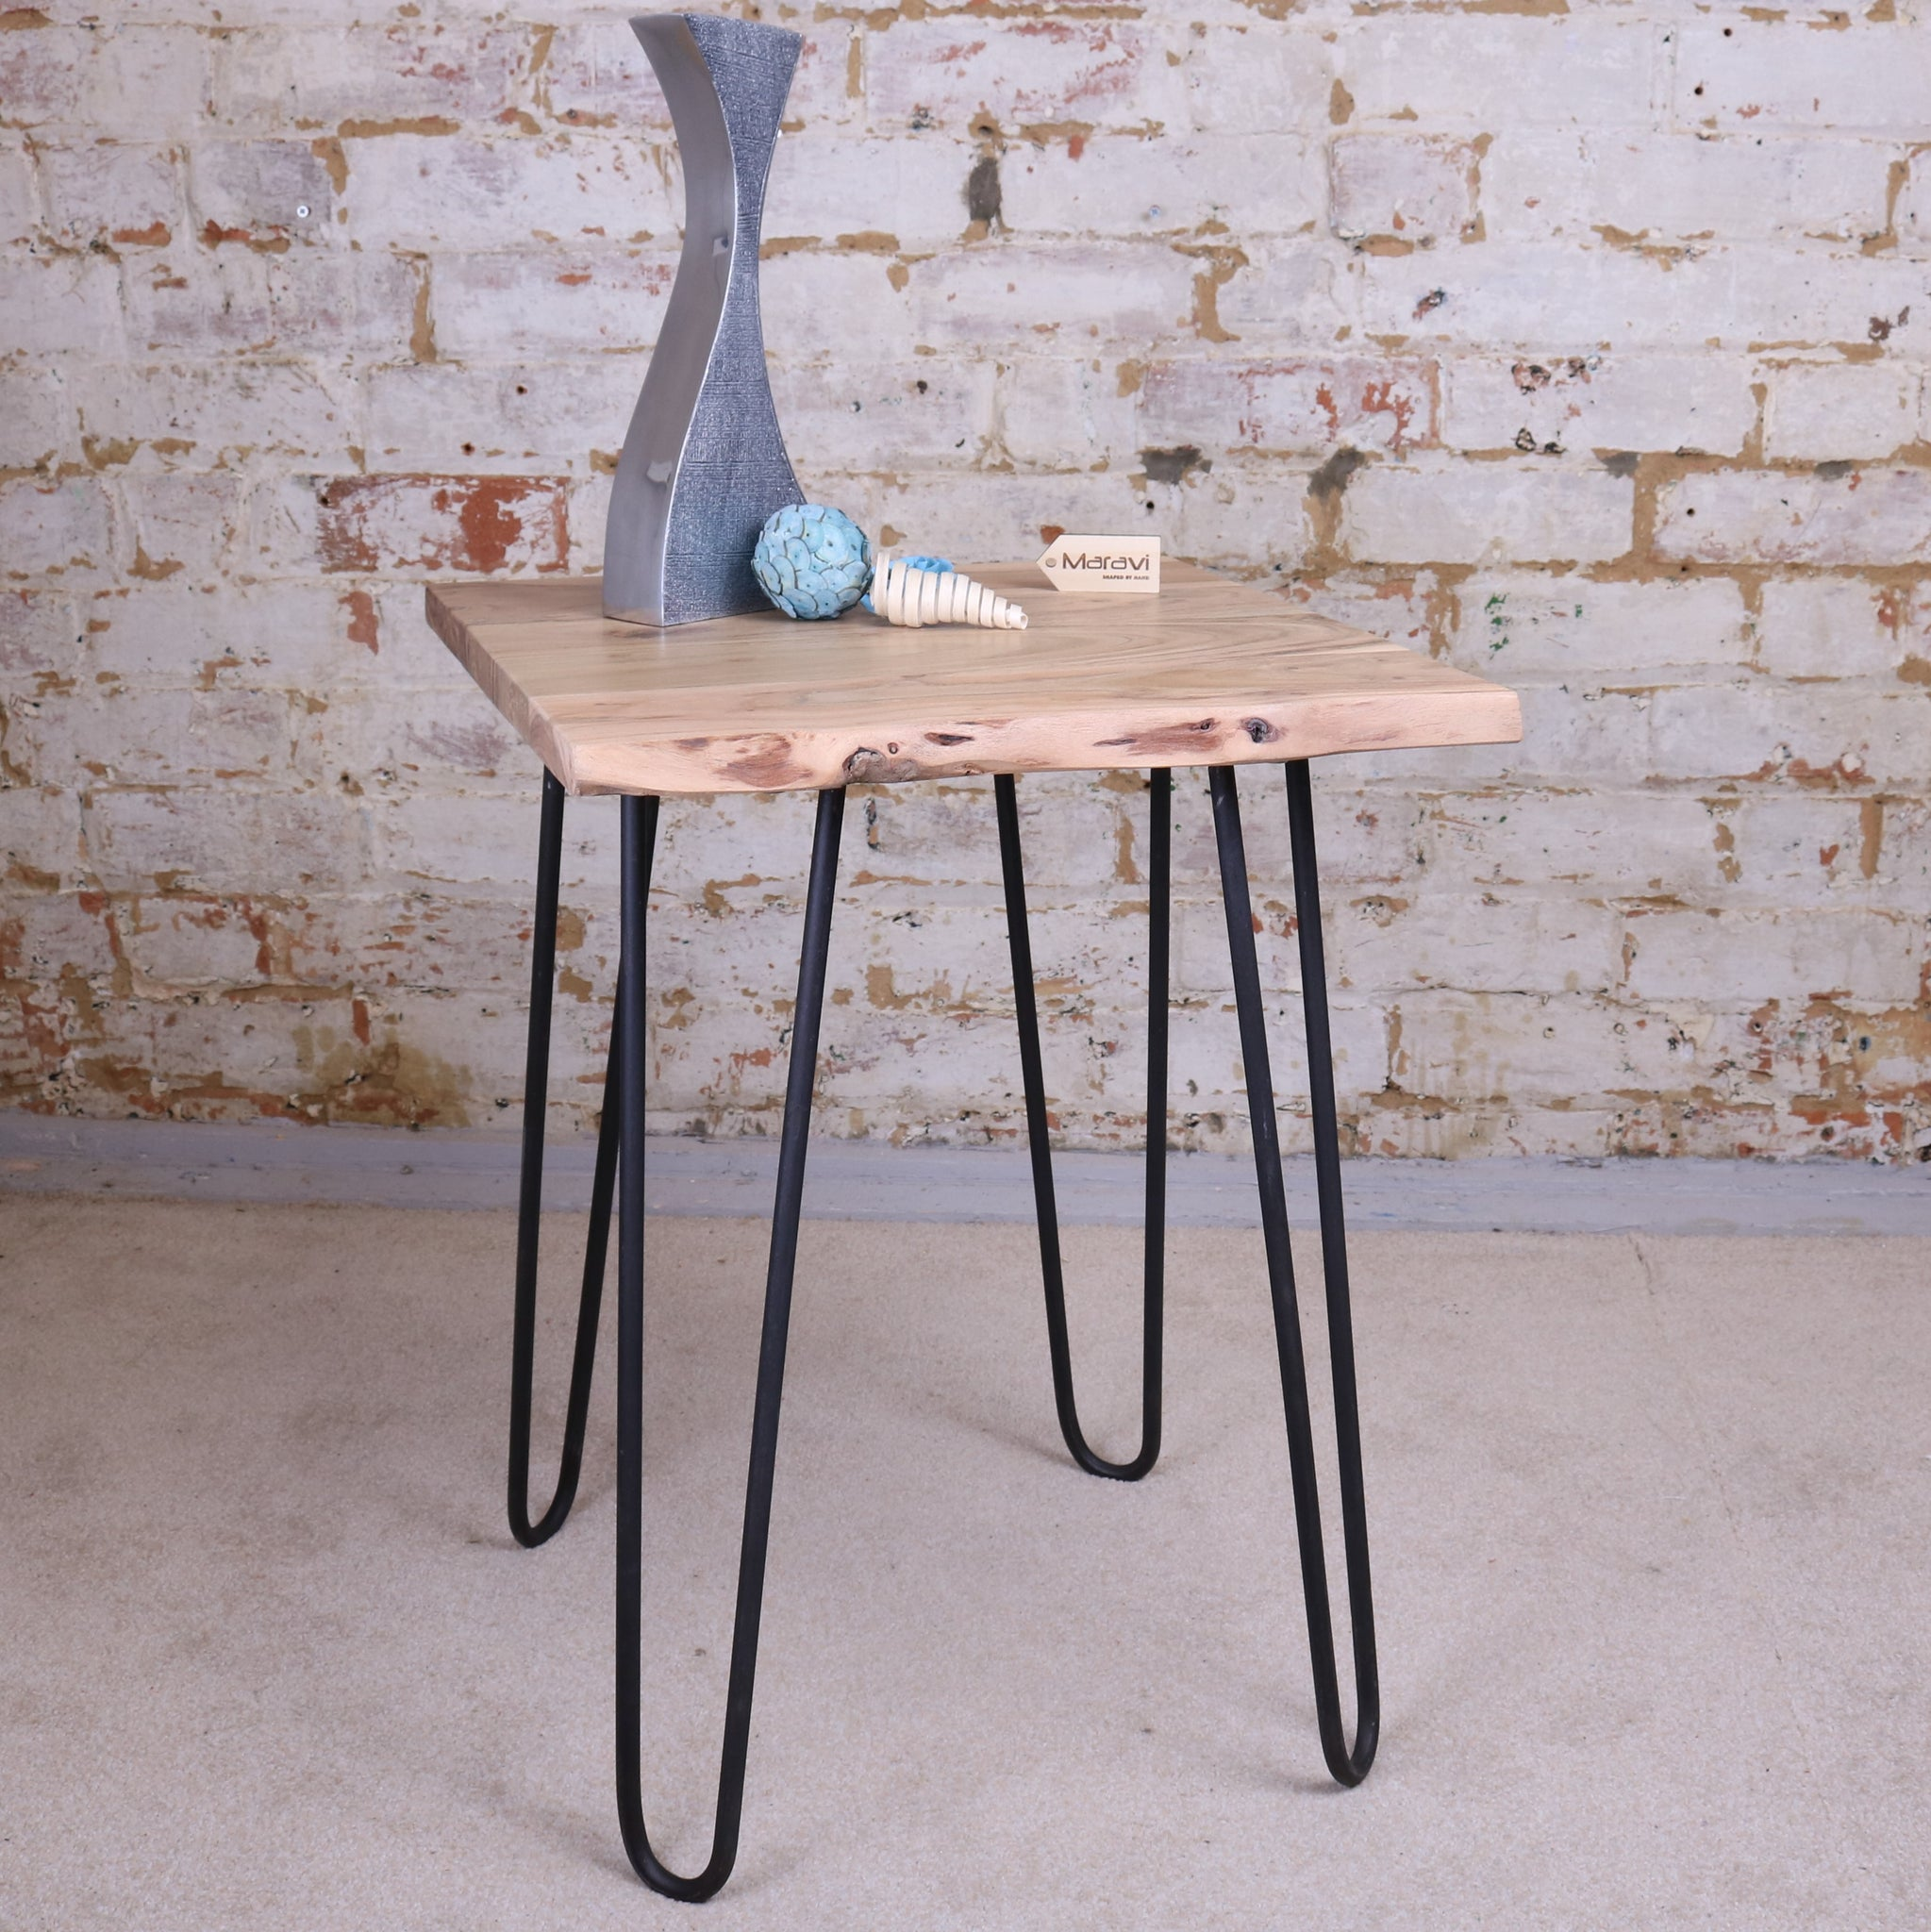 Kalan Rustic Edge Wooden Side Table 45cm